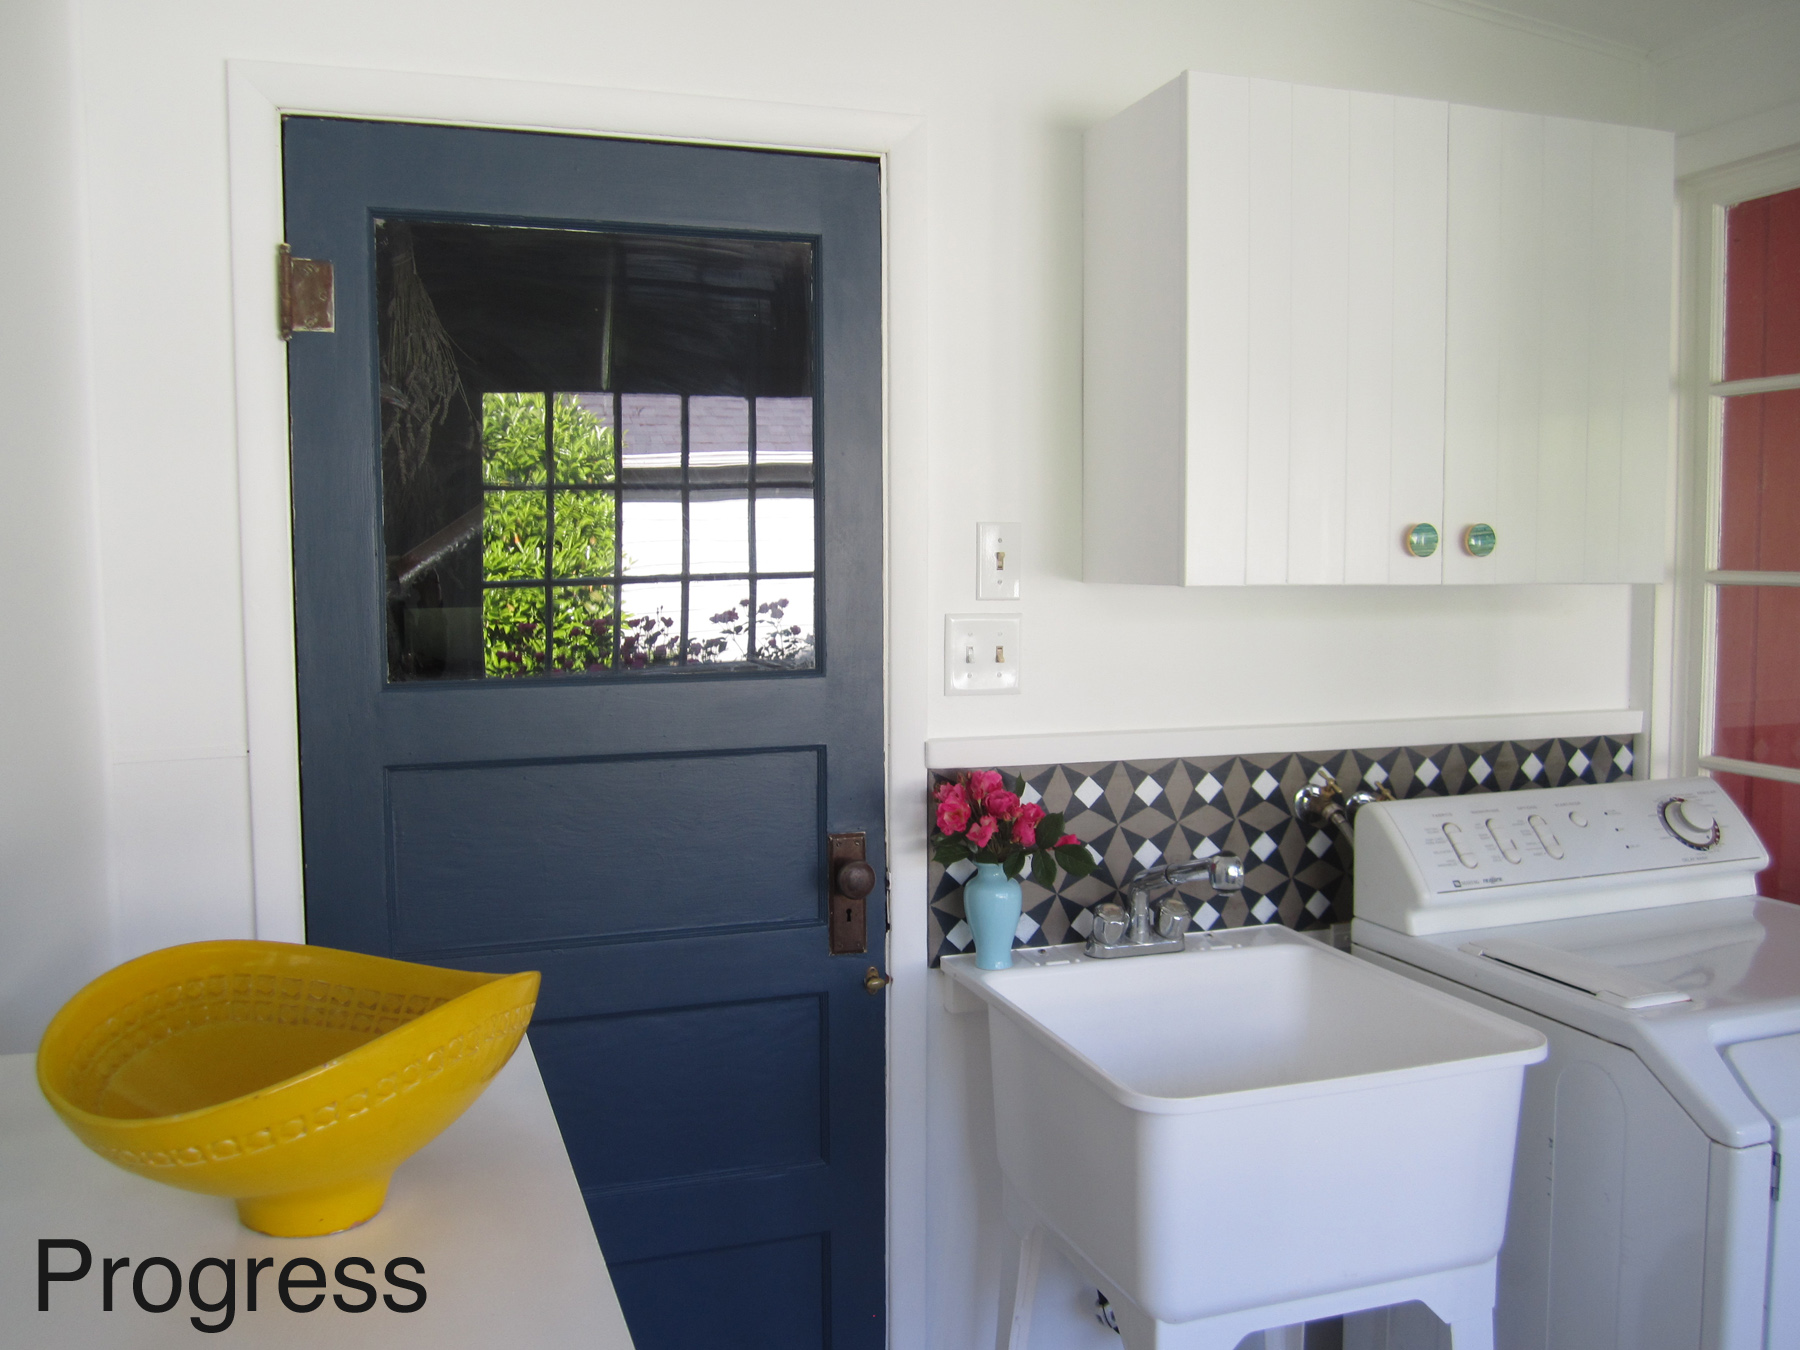 Laundry Room Progress With DIY Concrete Backsplash